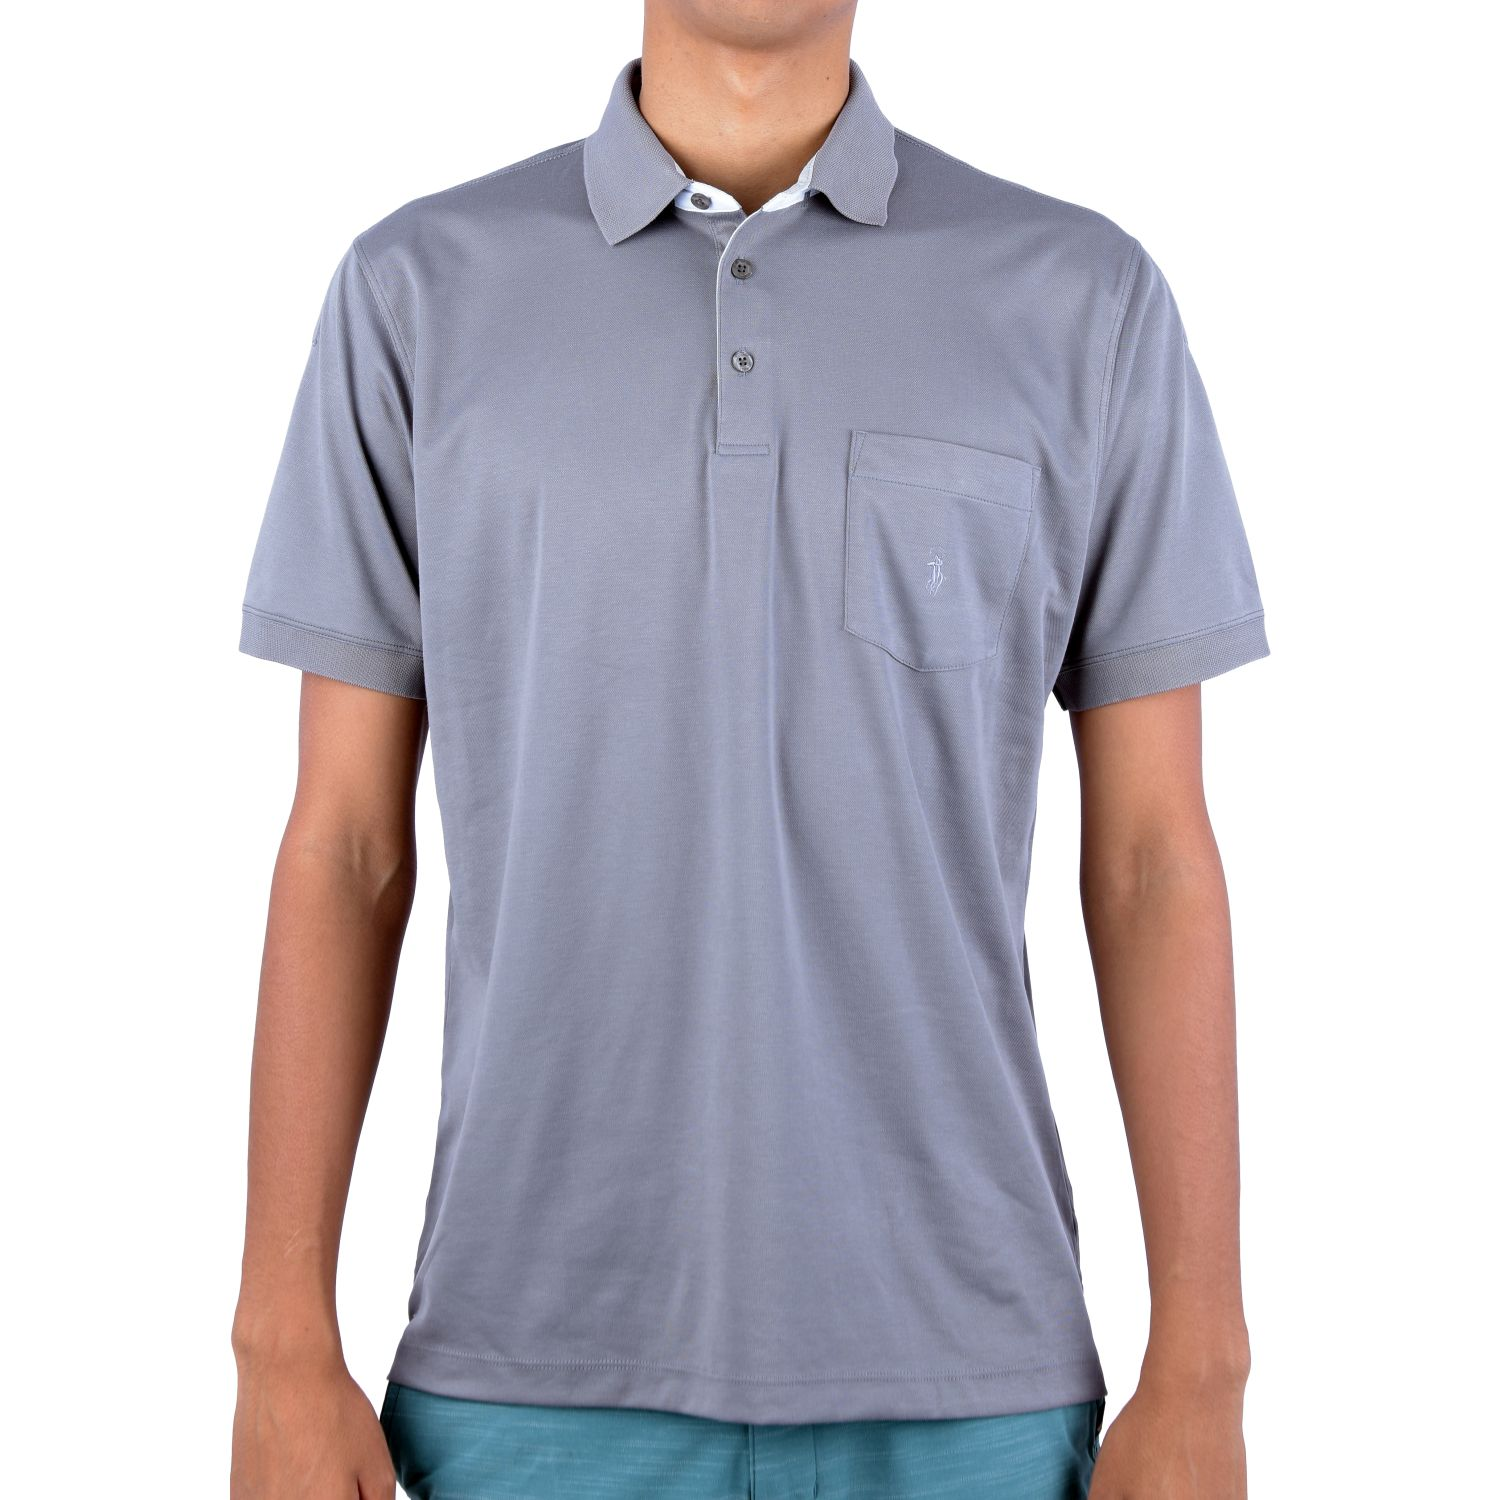 Ritzy Of Italy Polo Winter Oxford Color Entero Gris Polos